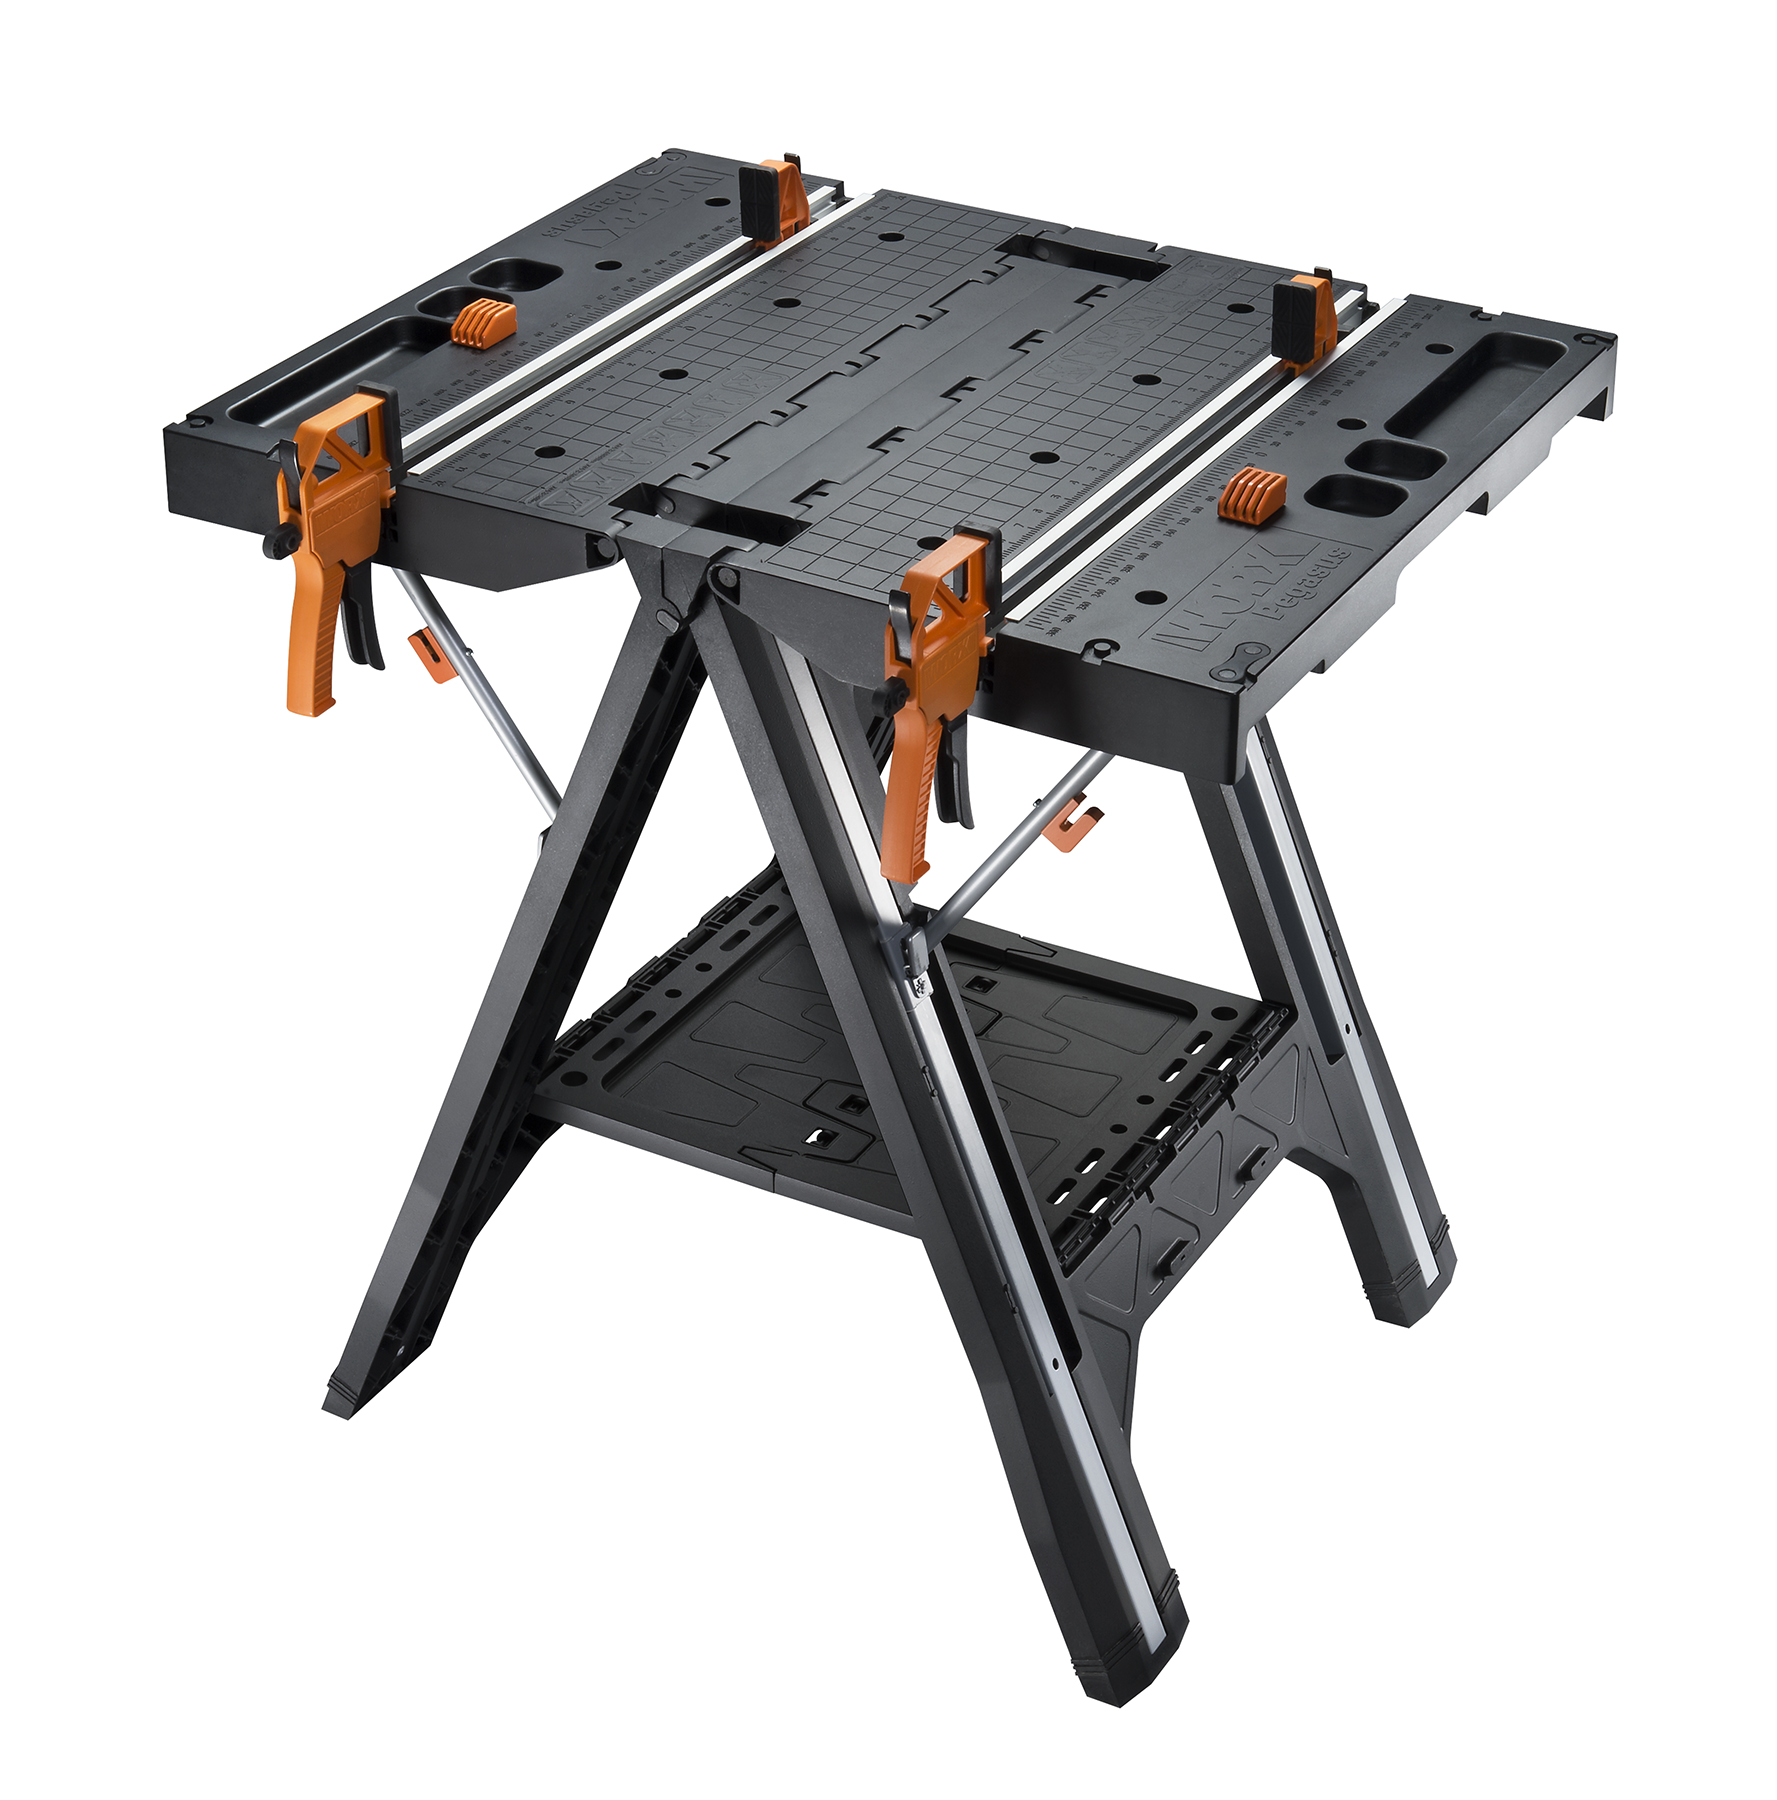 Worx Pegasus With (2) Quick Clamps And (4) Clamp Dogs   Walmart.com